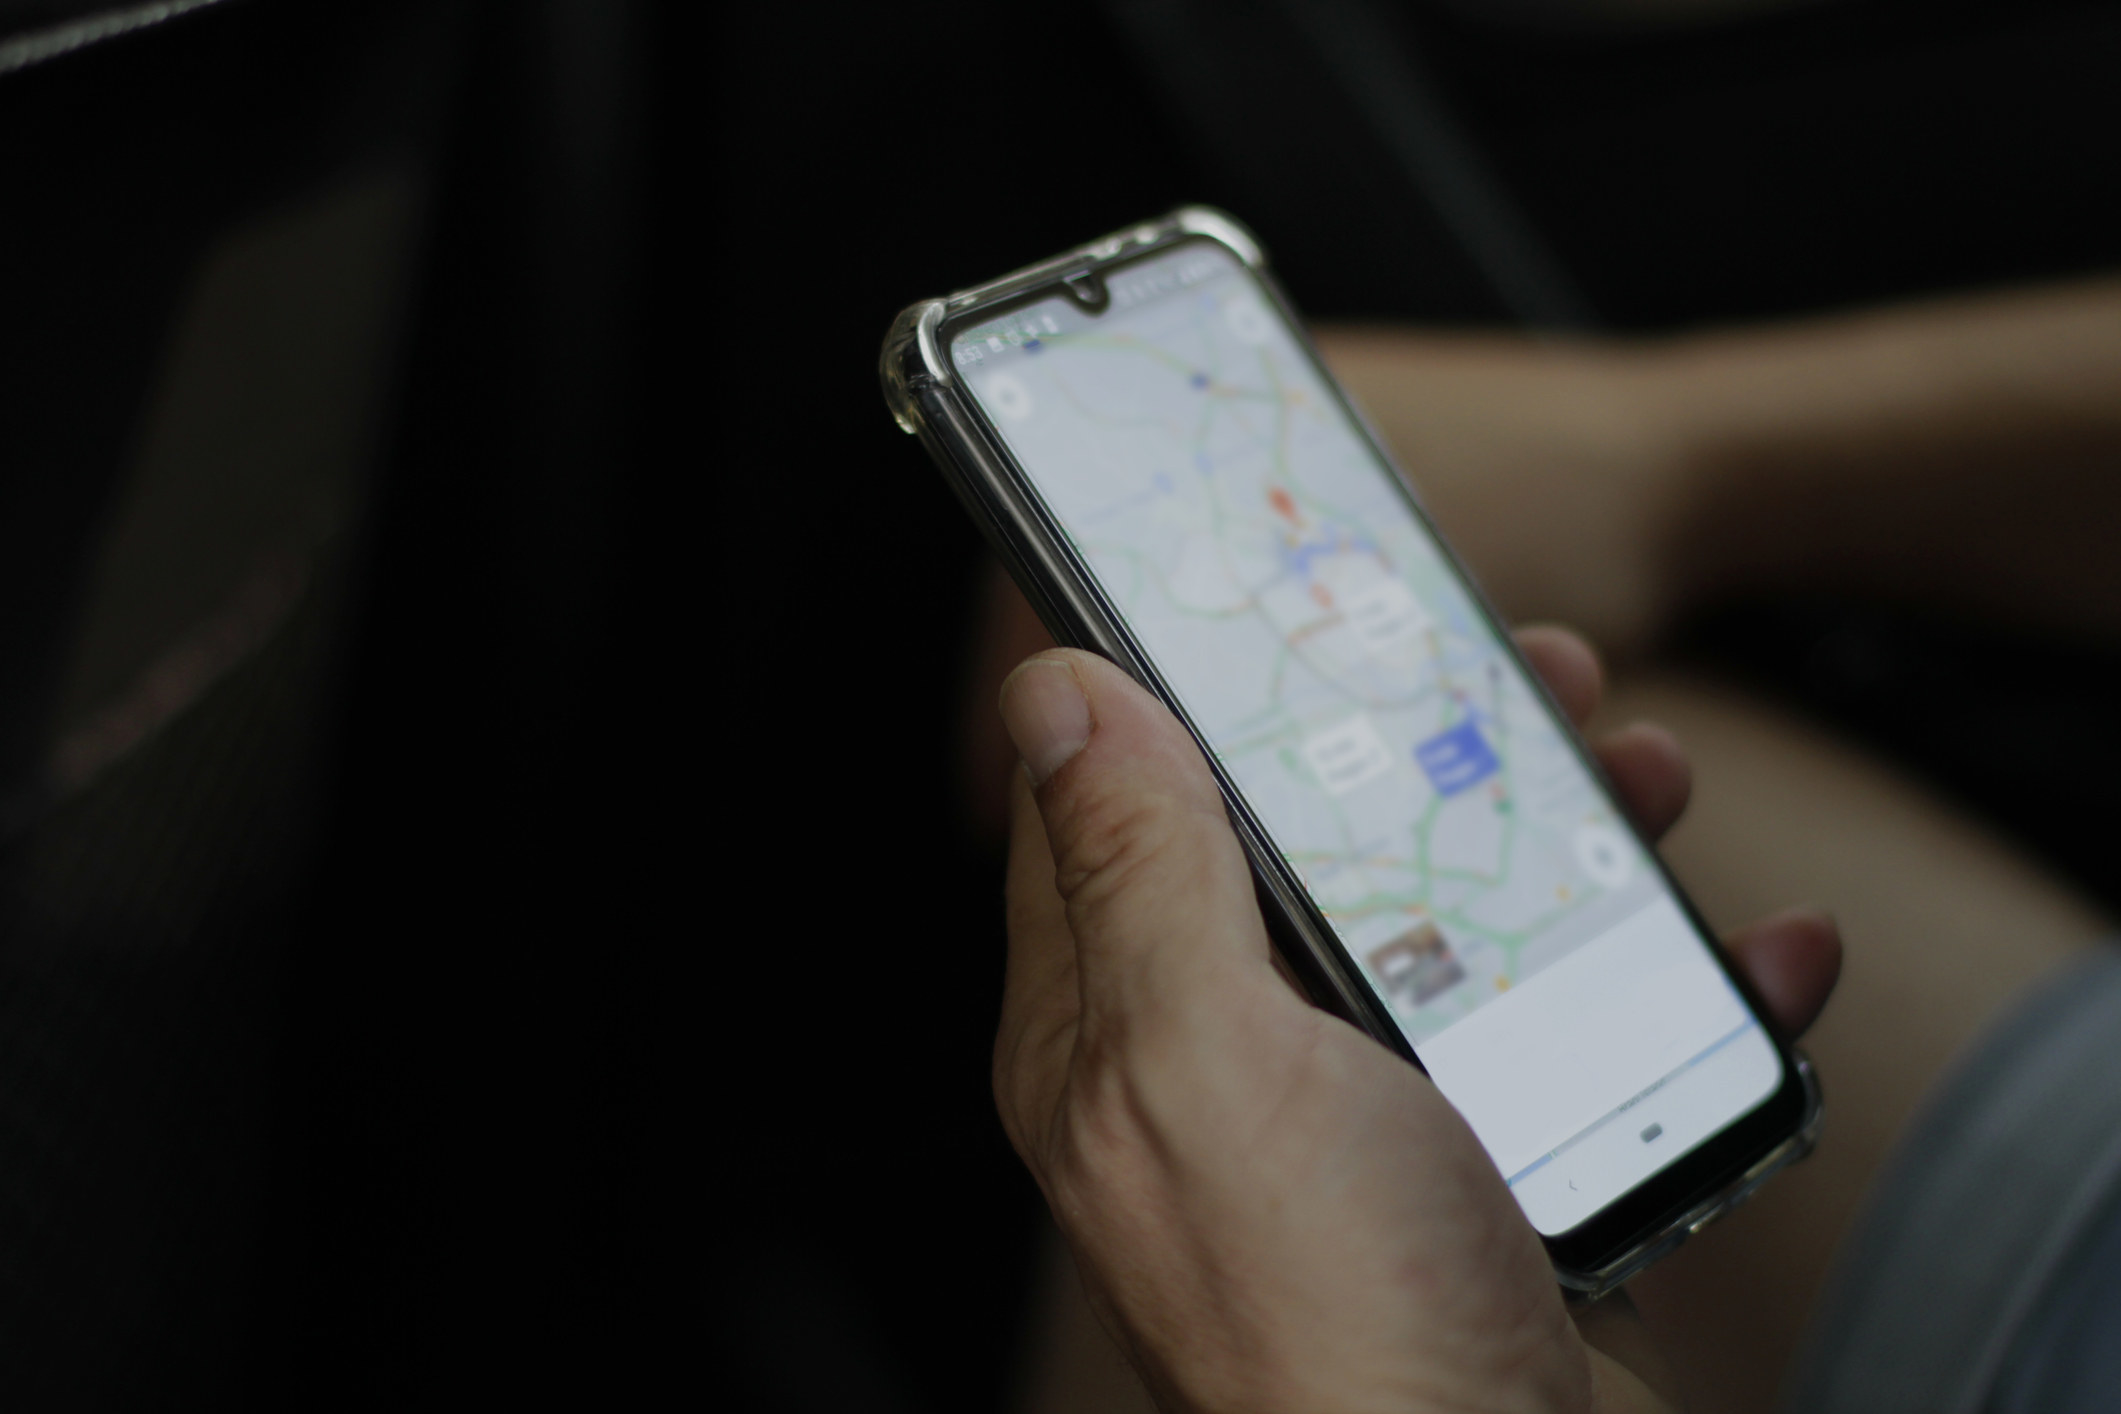 A hand holding a smartphone with a map on the screen.